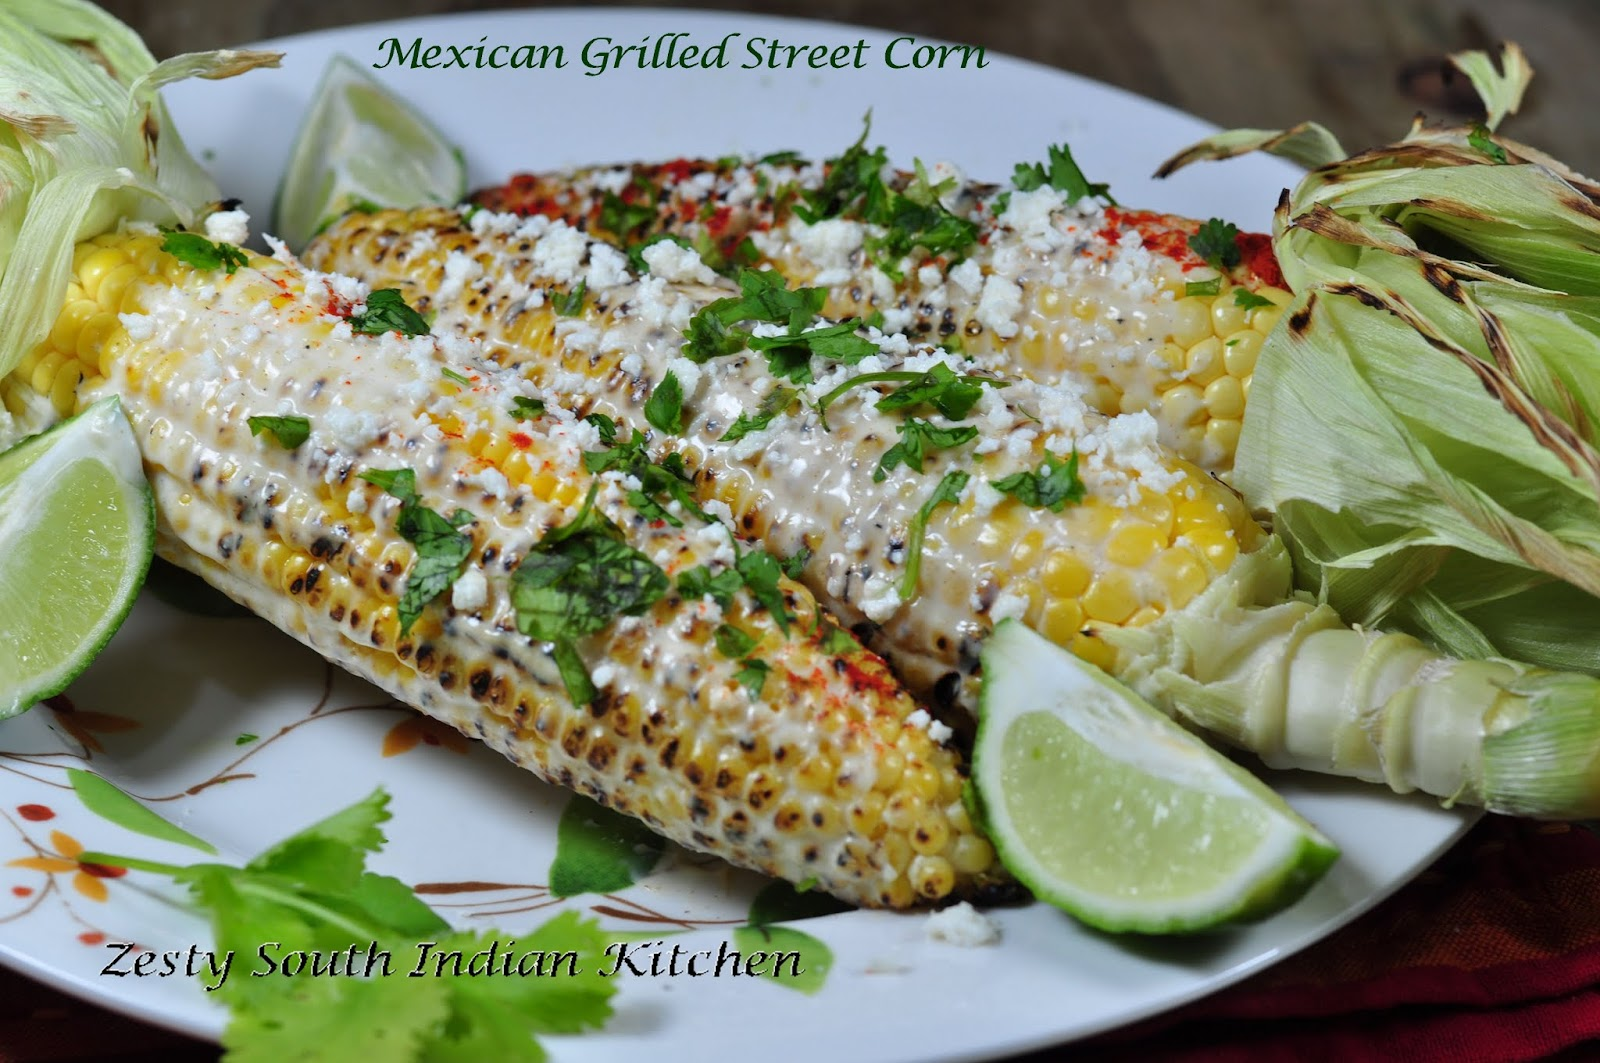 Mexican Grilled Street Corn - Zesty South Indian Kitchen